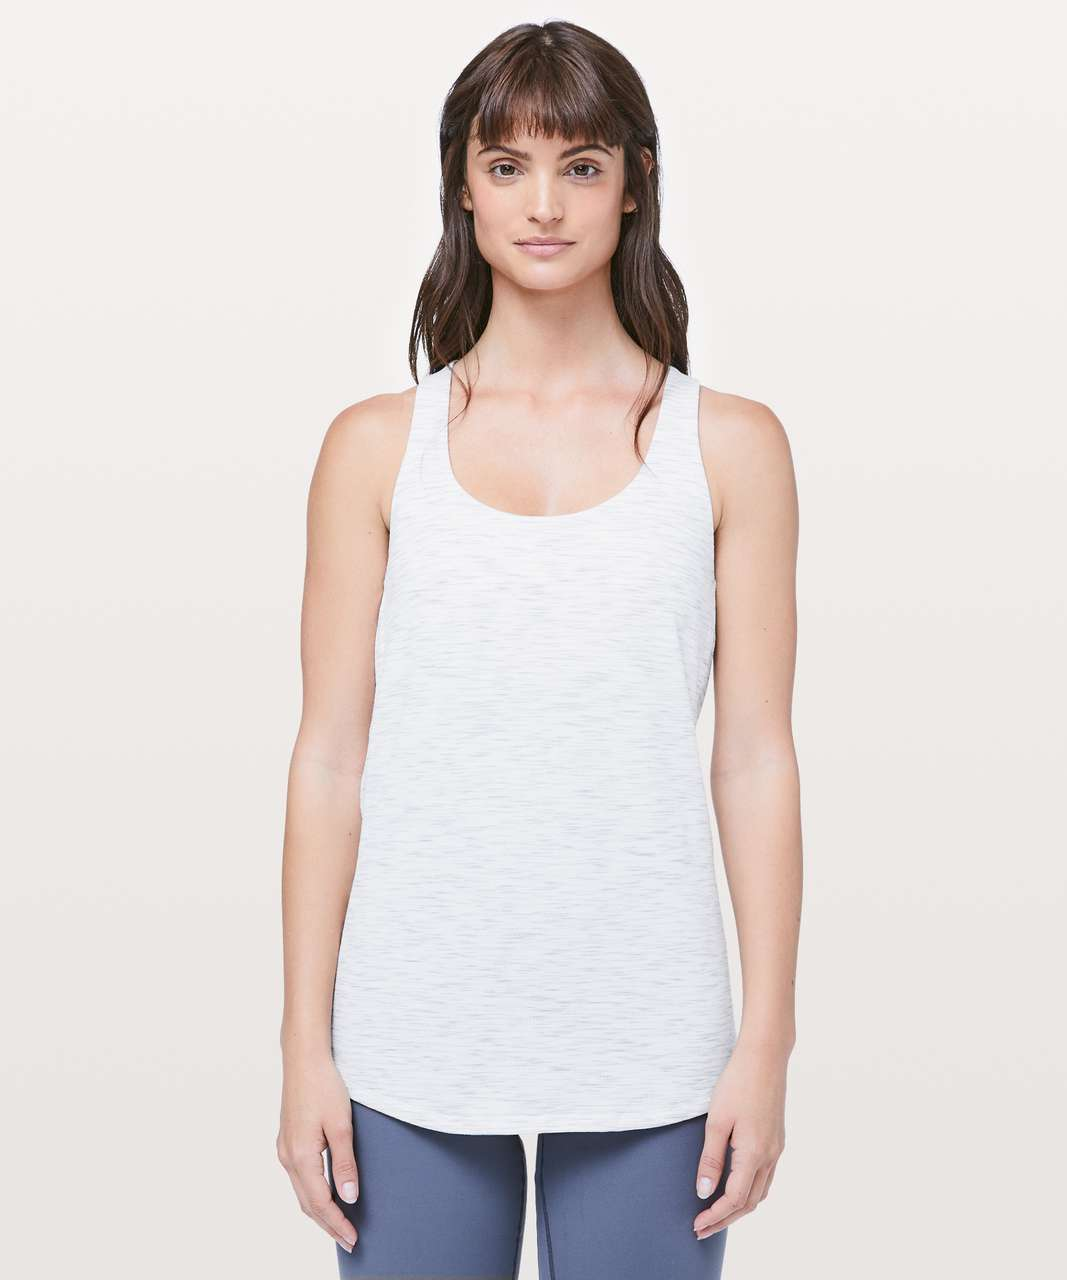 Lululemon Slay The Studio 2-In-1 Tank *Medium Support B/C Cup - Tiger Space Dye Hail White / Pink Glow